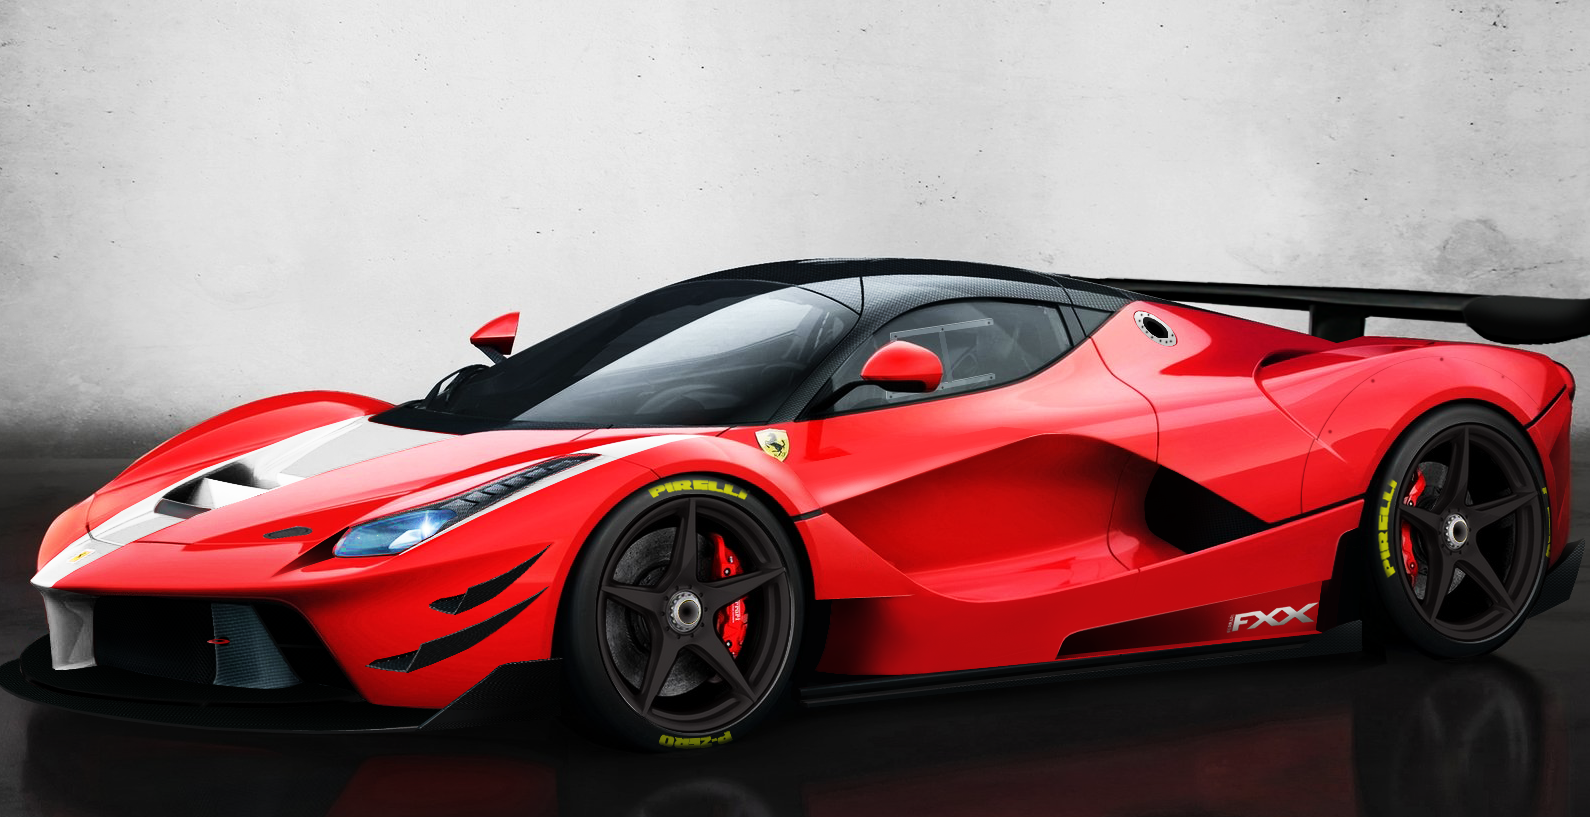 Laferrari Xx Looks And Sounds Completely Bonkers